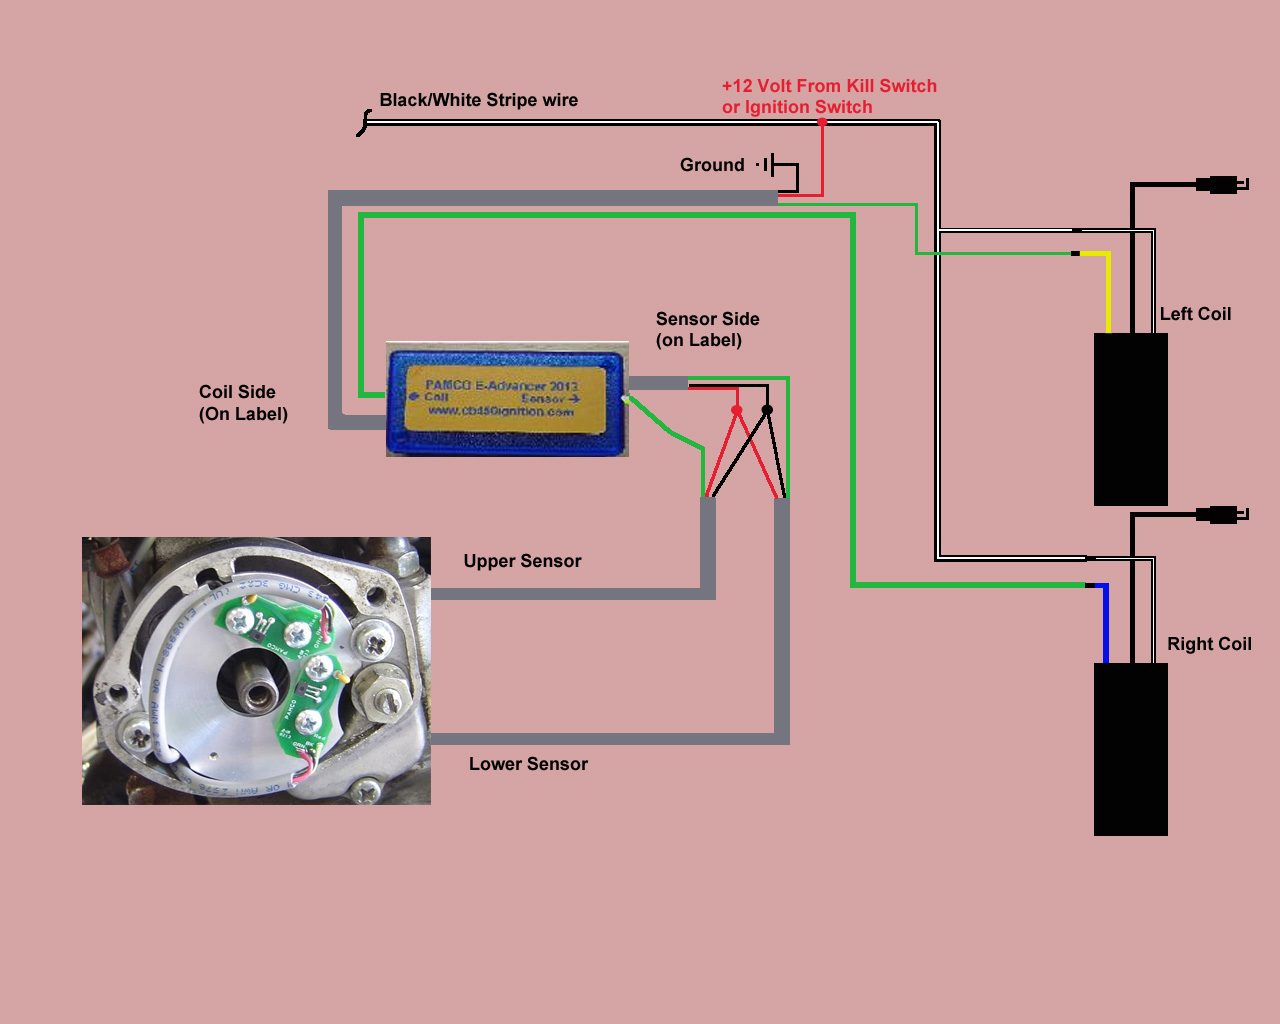 Wiring Update Boxed additionally Wiring likewise Tumblr M L Fne Io Rv Eio R furthermore Xs Wiringdiagram Cdiignition together with D T Help Pamco Universal Coils Pamco Cb Electronic Advancer Wiring Diagram. on pamco ignition wiring diagram